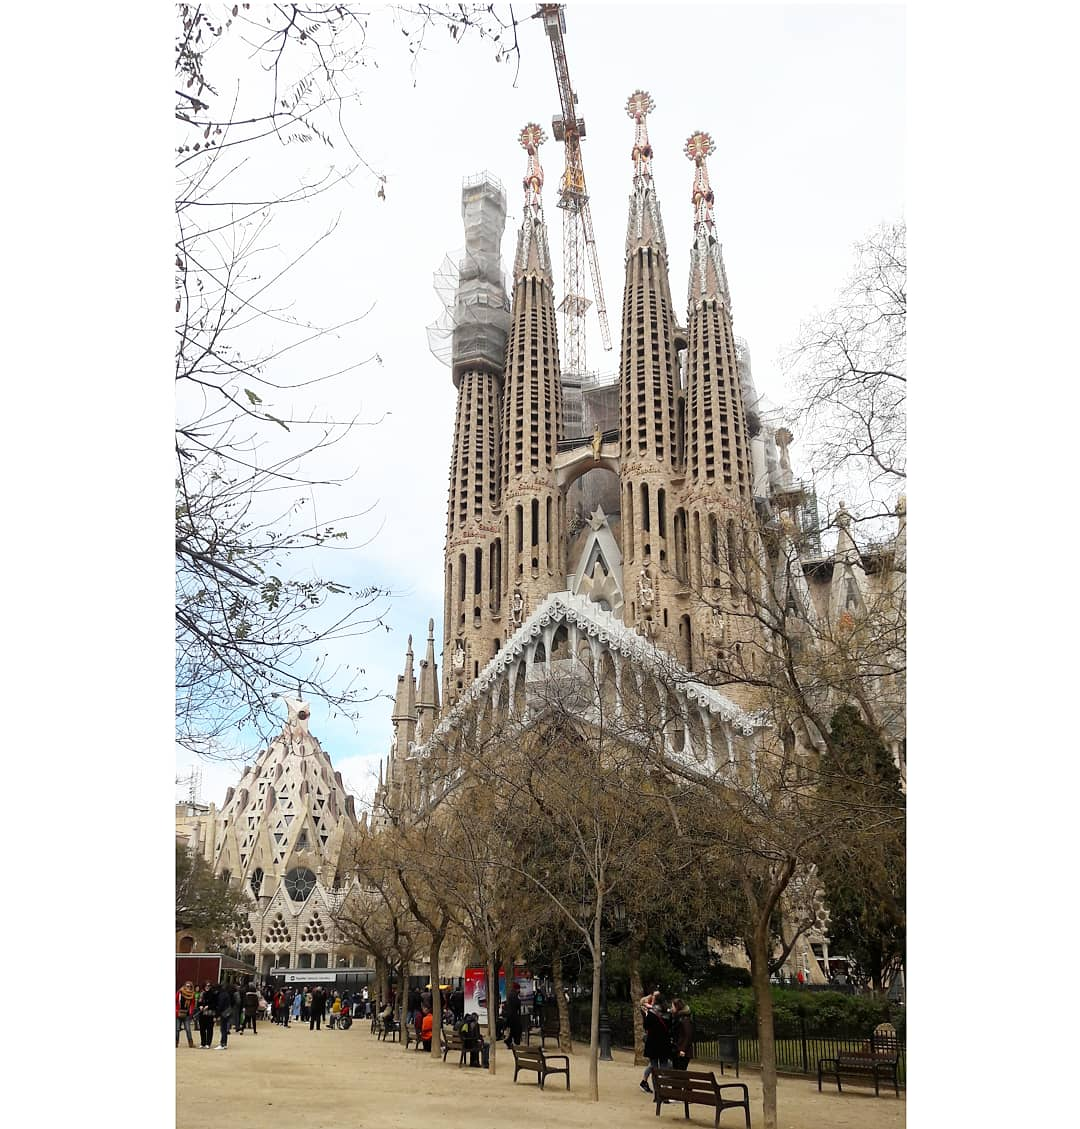 Sagrada Familia (Spain) is the number one tourist attraction in Europe. Discover all the best attractions in Europe from this article.